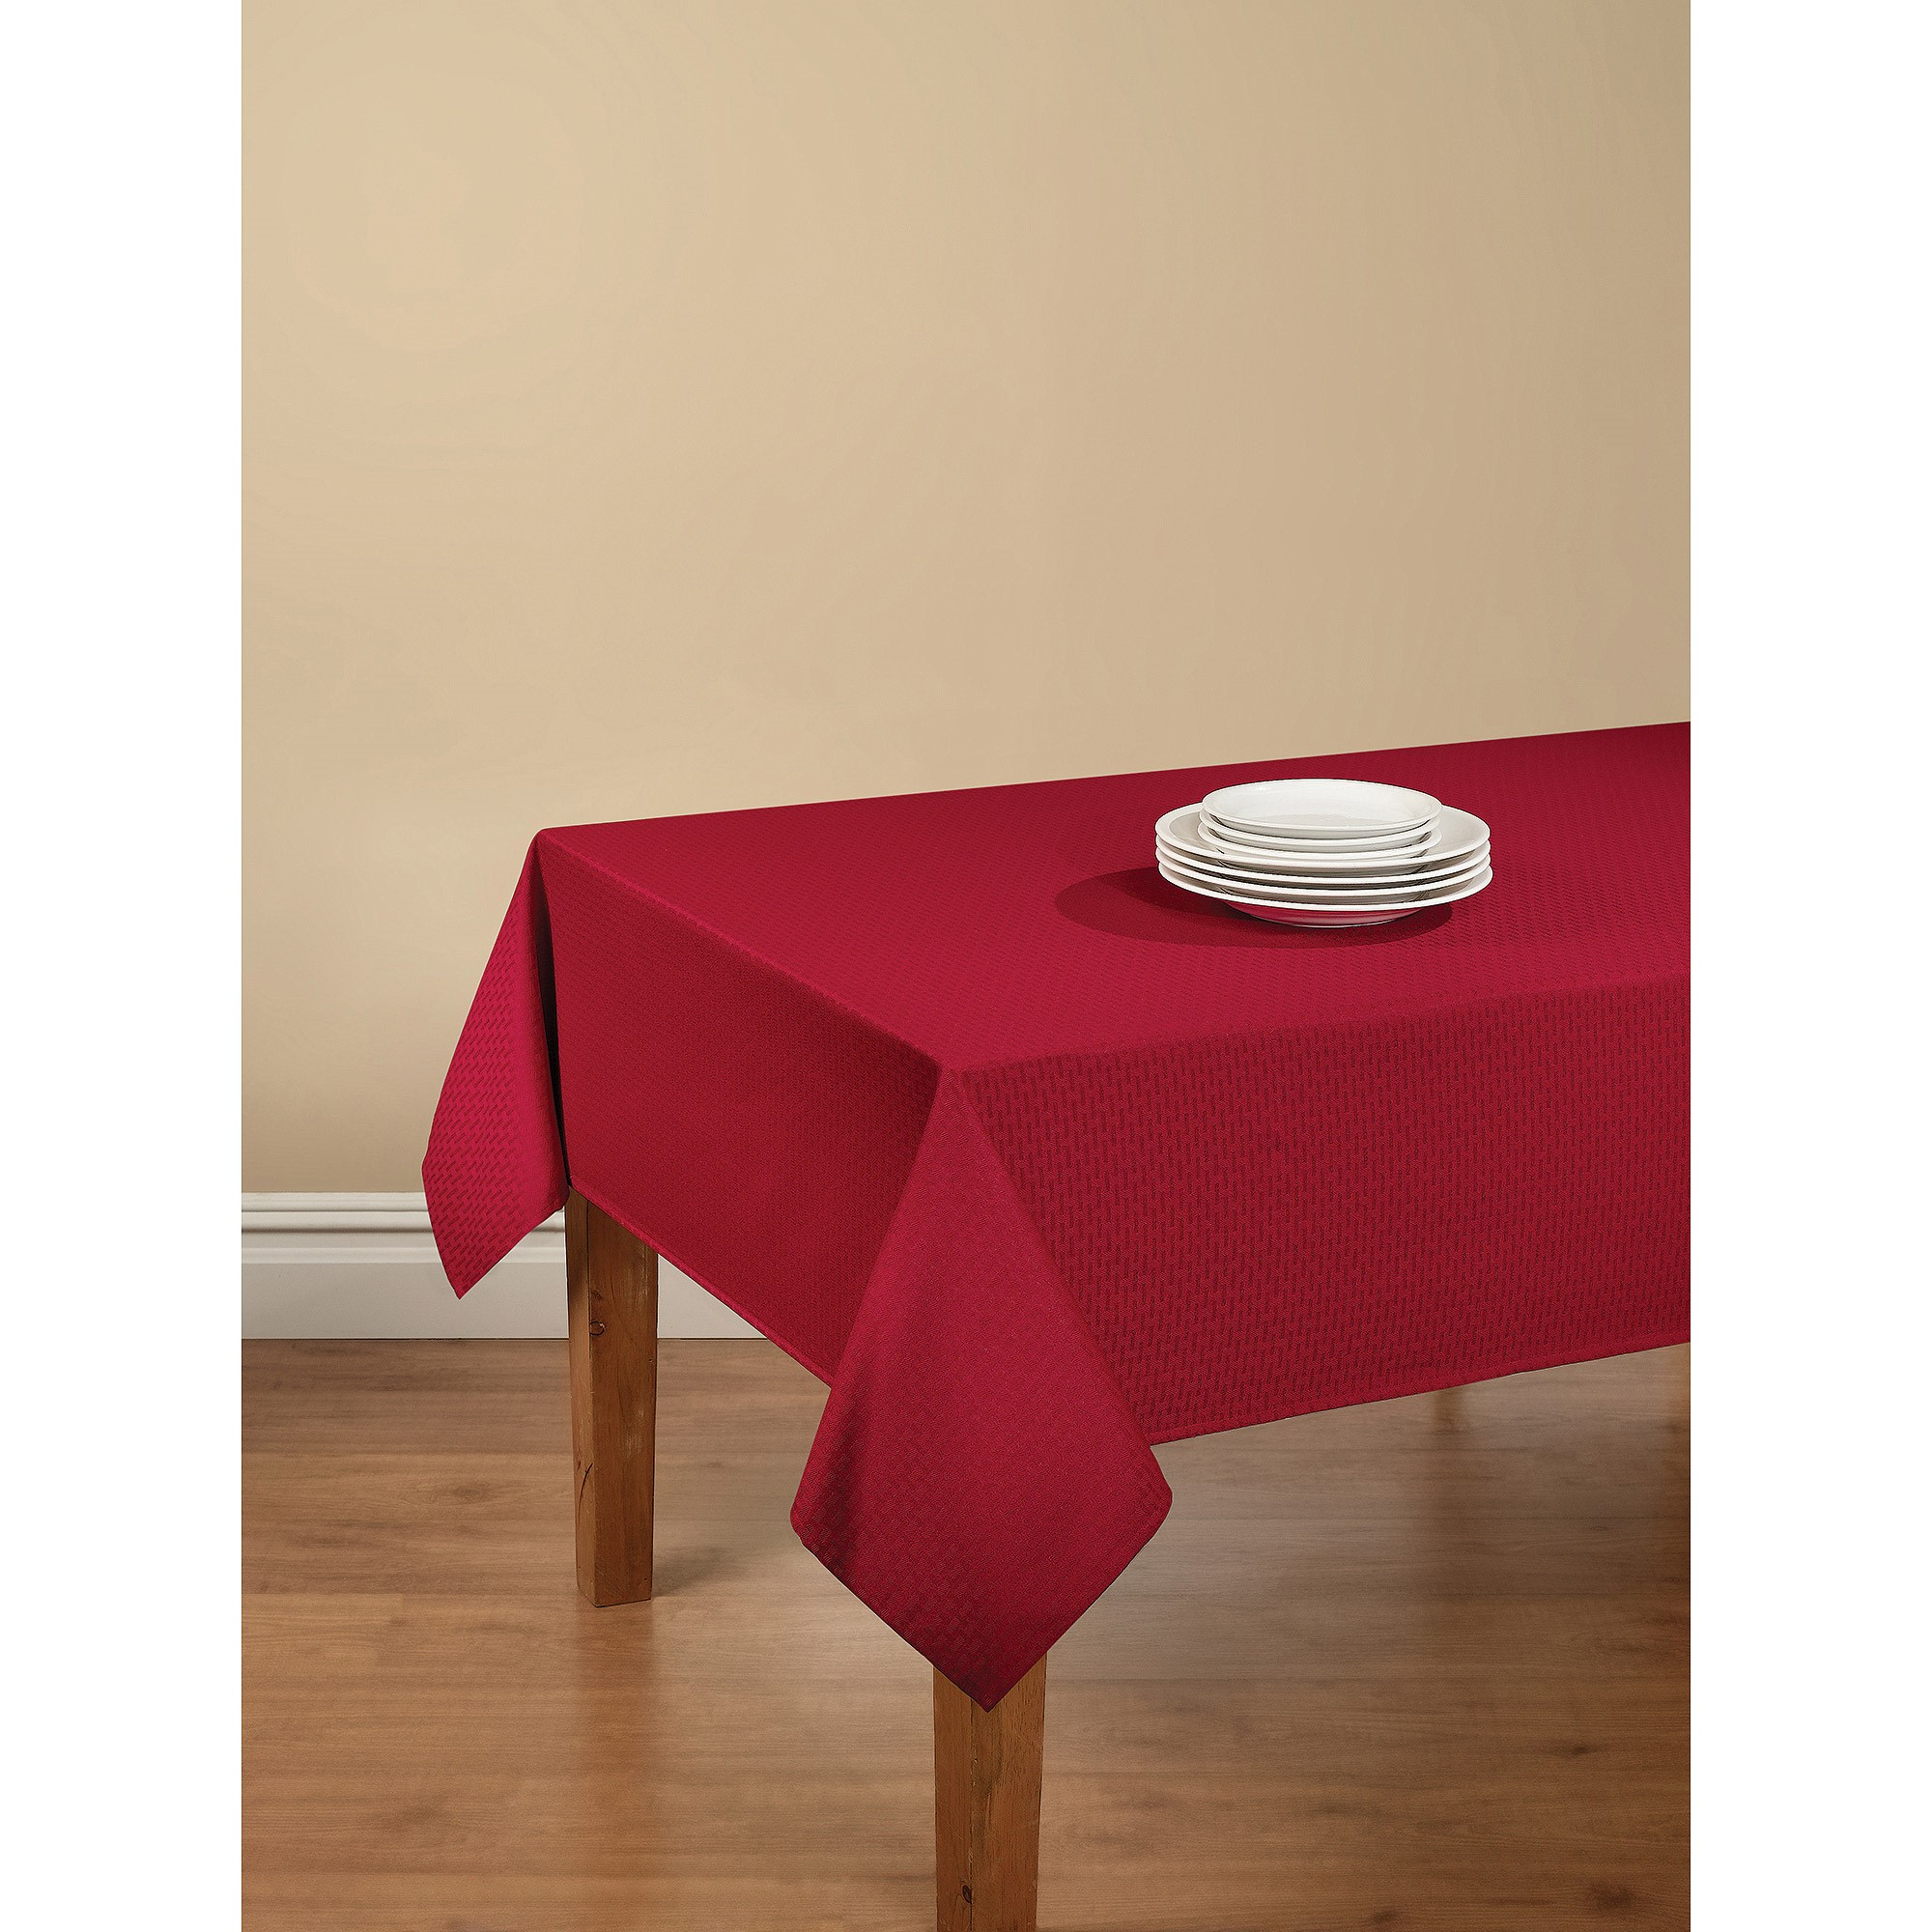 mainstays hyde fabric tablecloth red for inch round accent table pottery barn crystal floor lamp concrete top outdoor dining best furniture hammered brass side fall runner